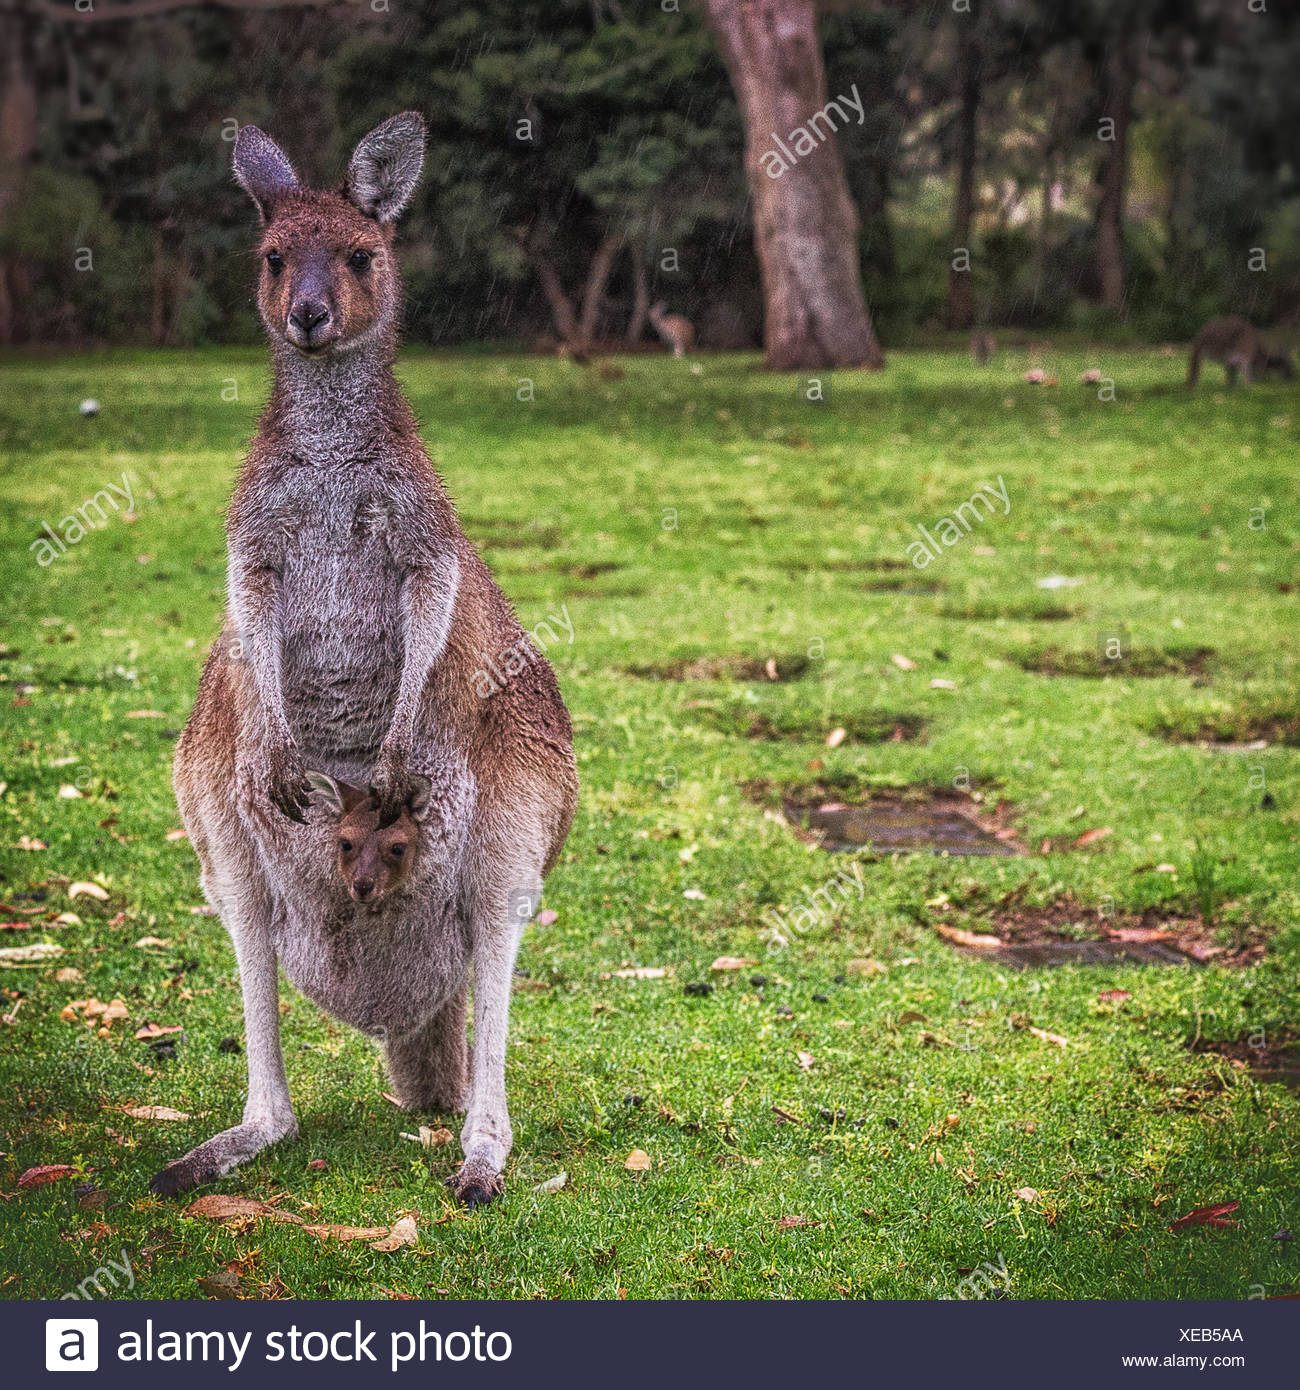 Kangourou et Joey, de l'Australie Photo Stock